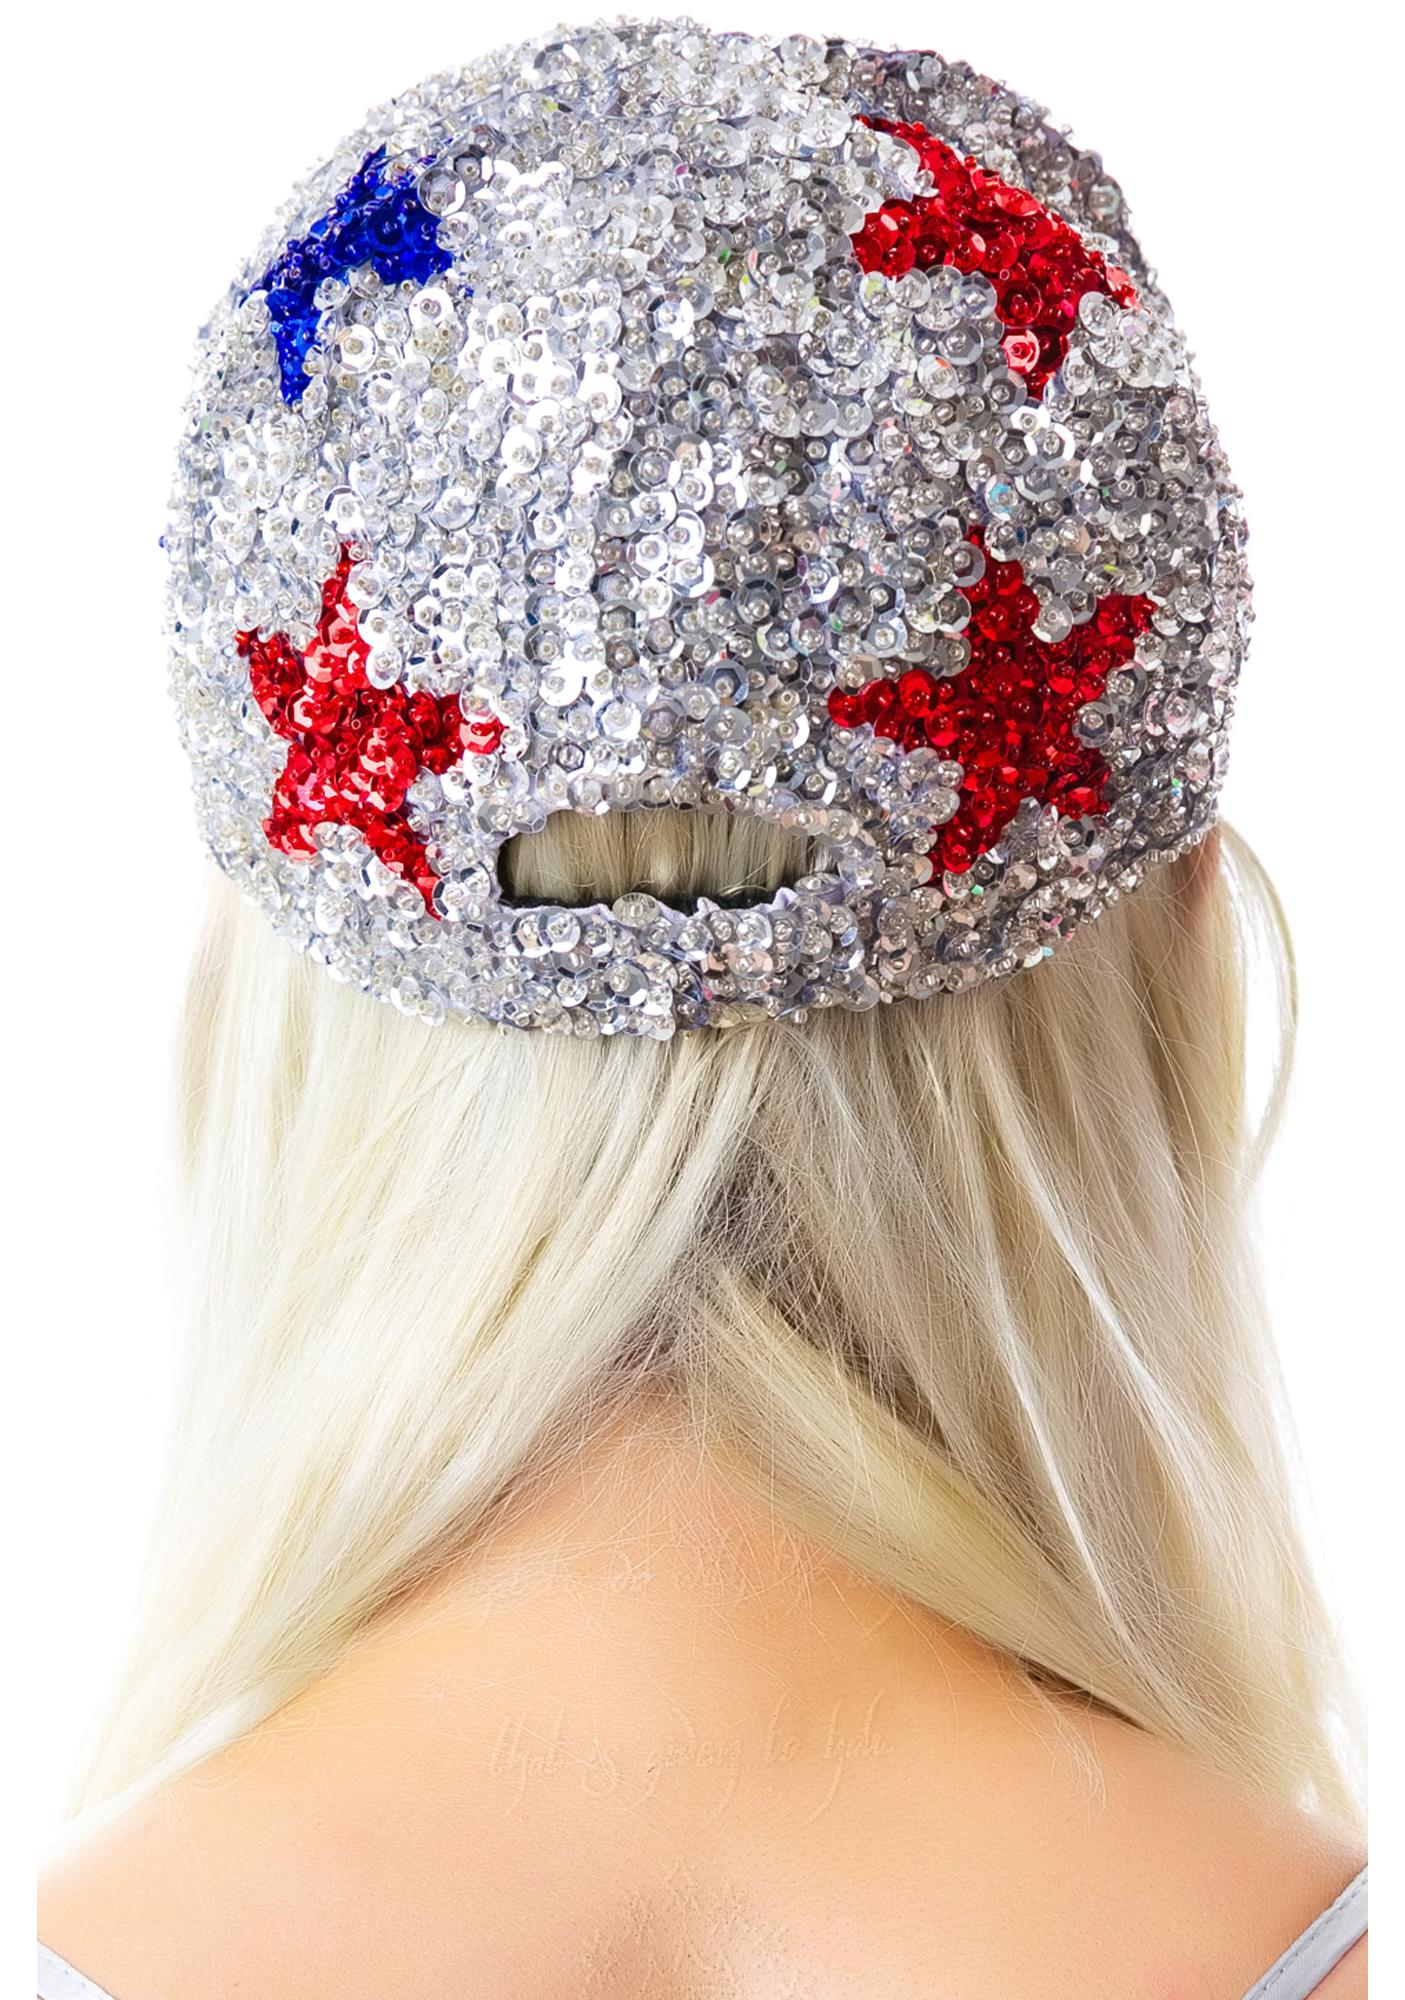 CoCo's Star Bangled Crystalized Cap